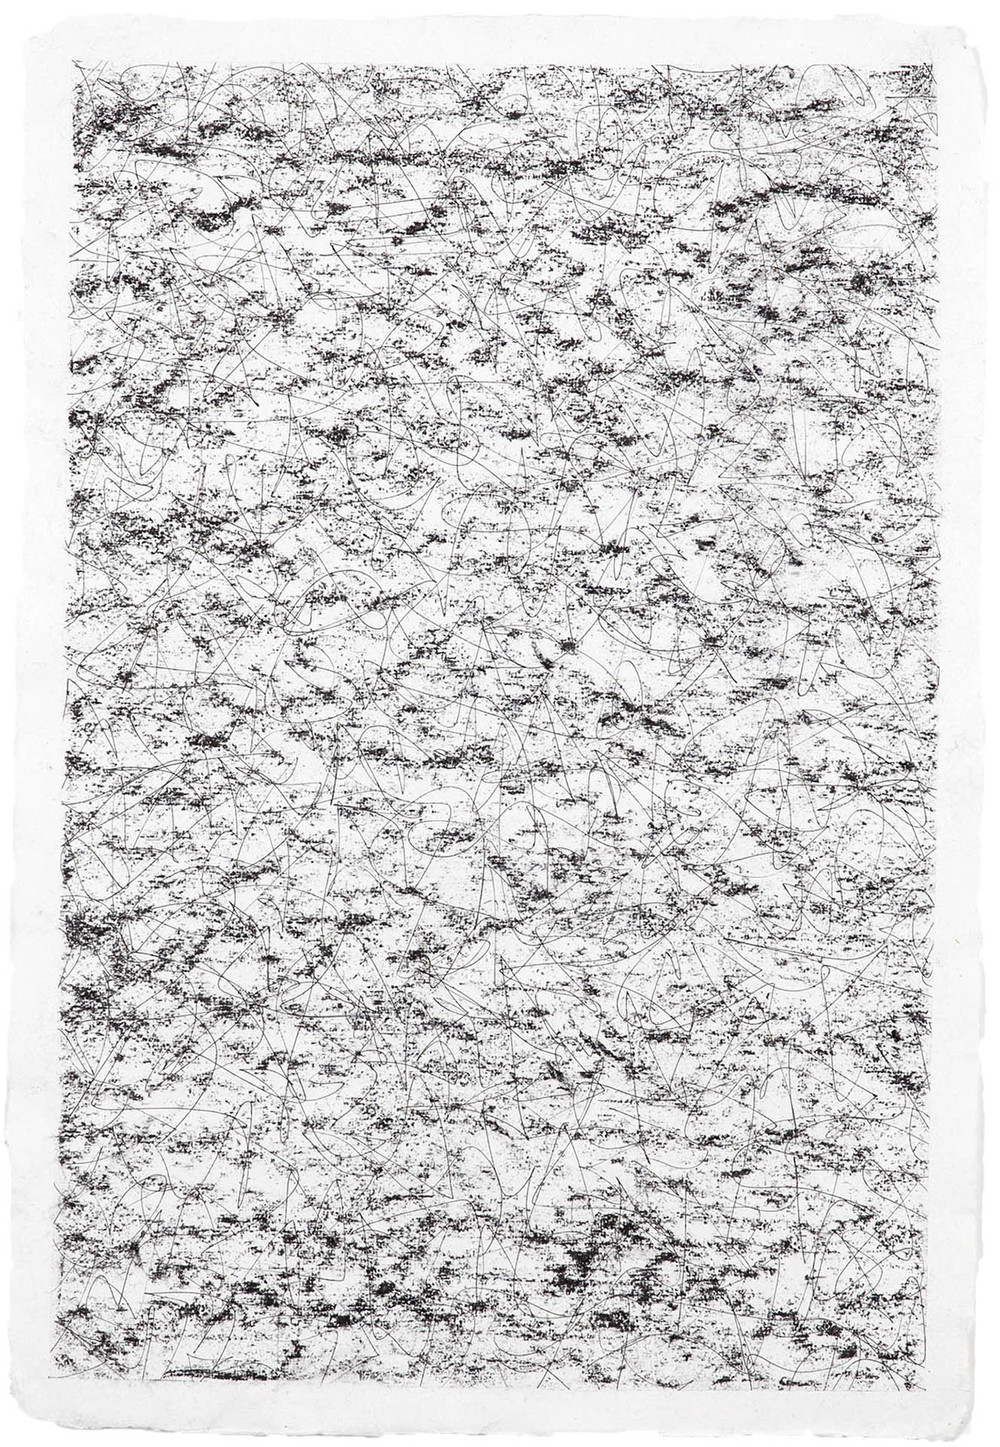 Morning beer blues,  2014. Charcoal and pen on paper, 56cm x 38cm